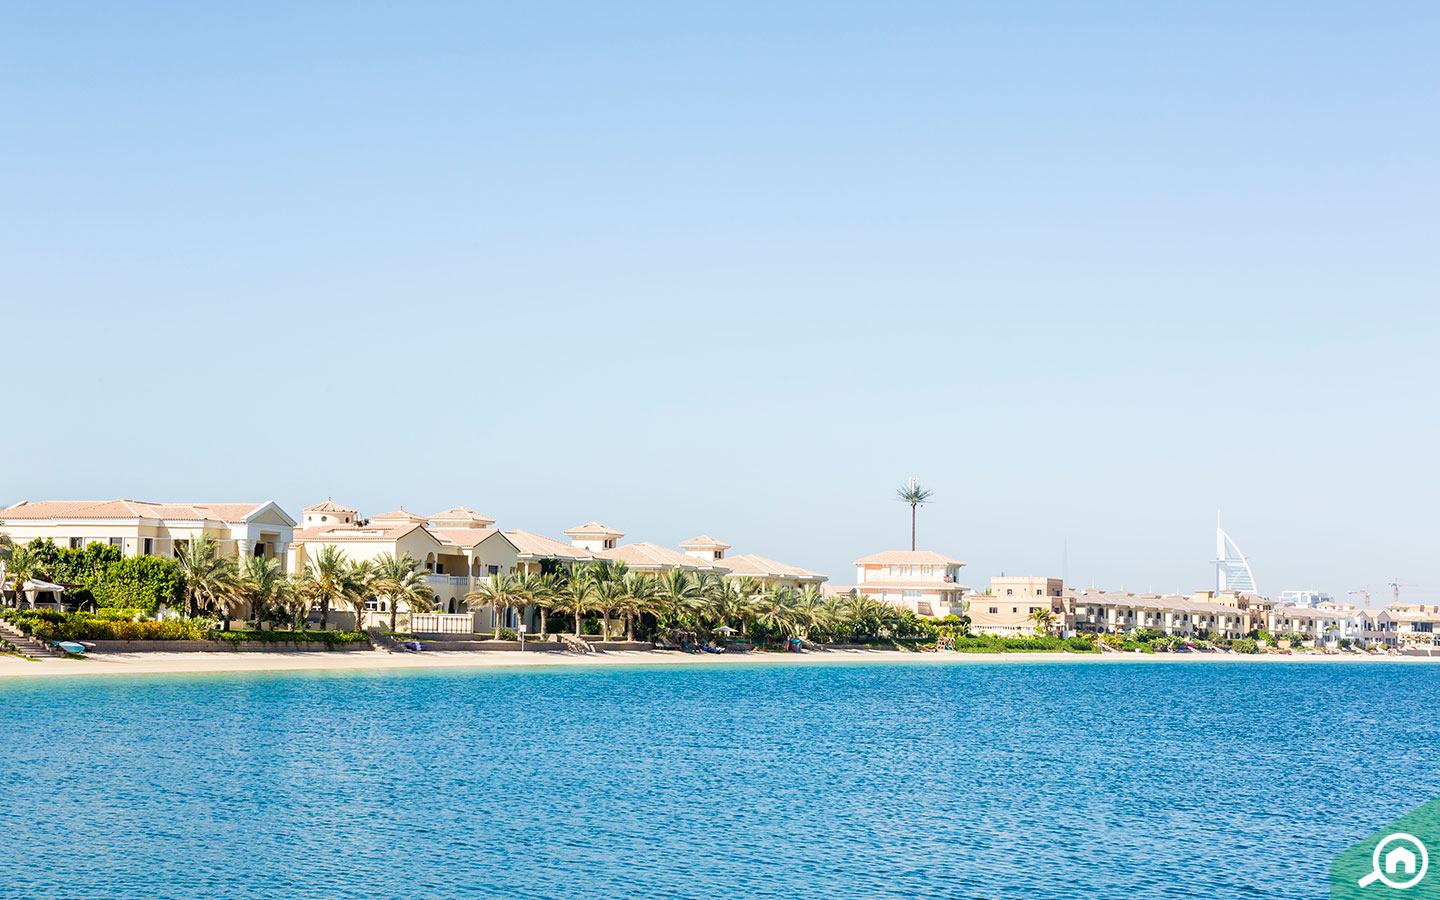 The Palm Jumeirah consists of exotic beaches and resorts